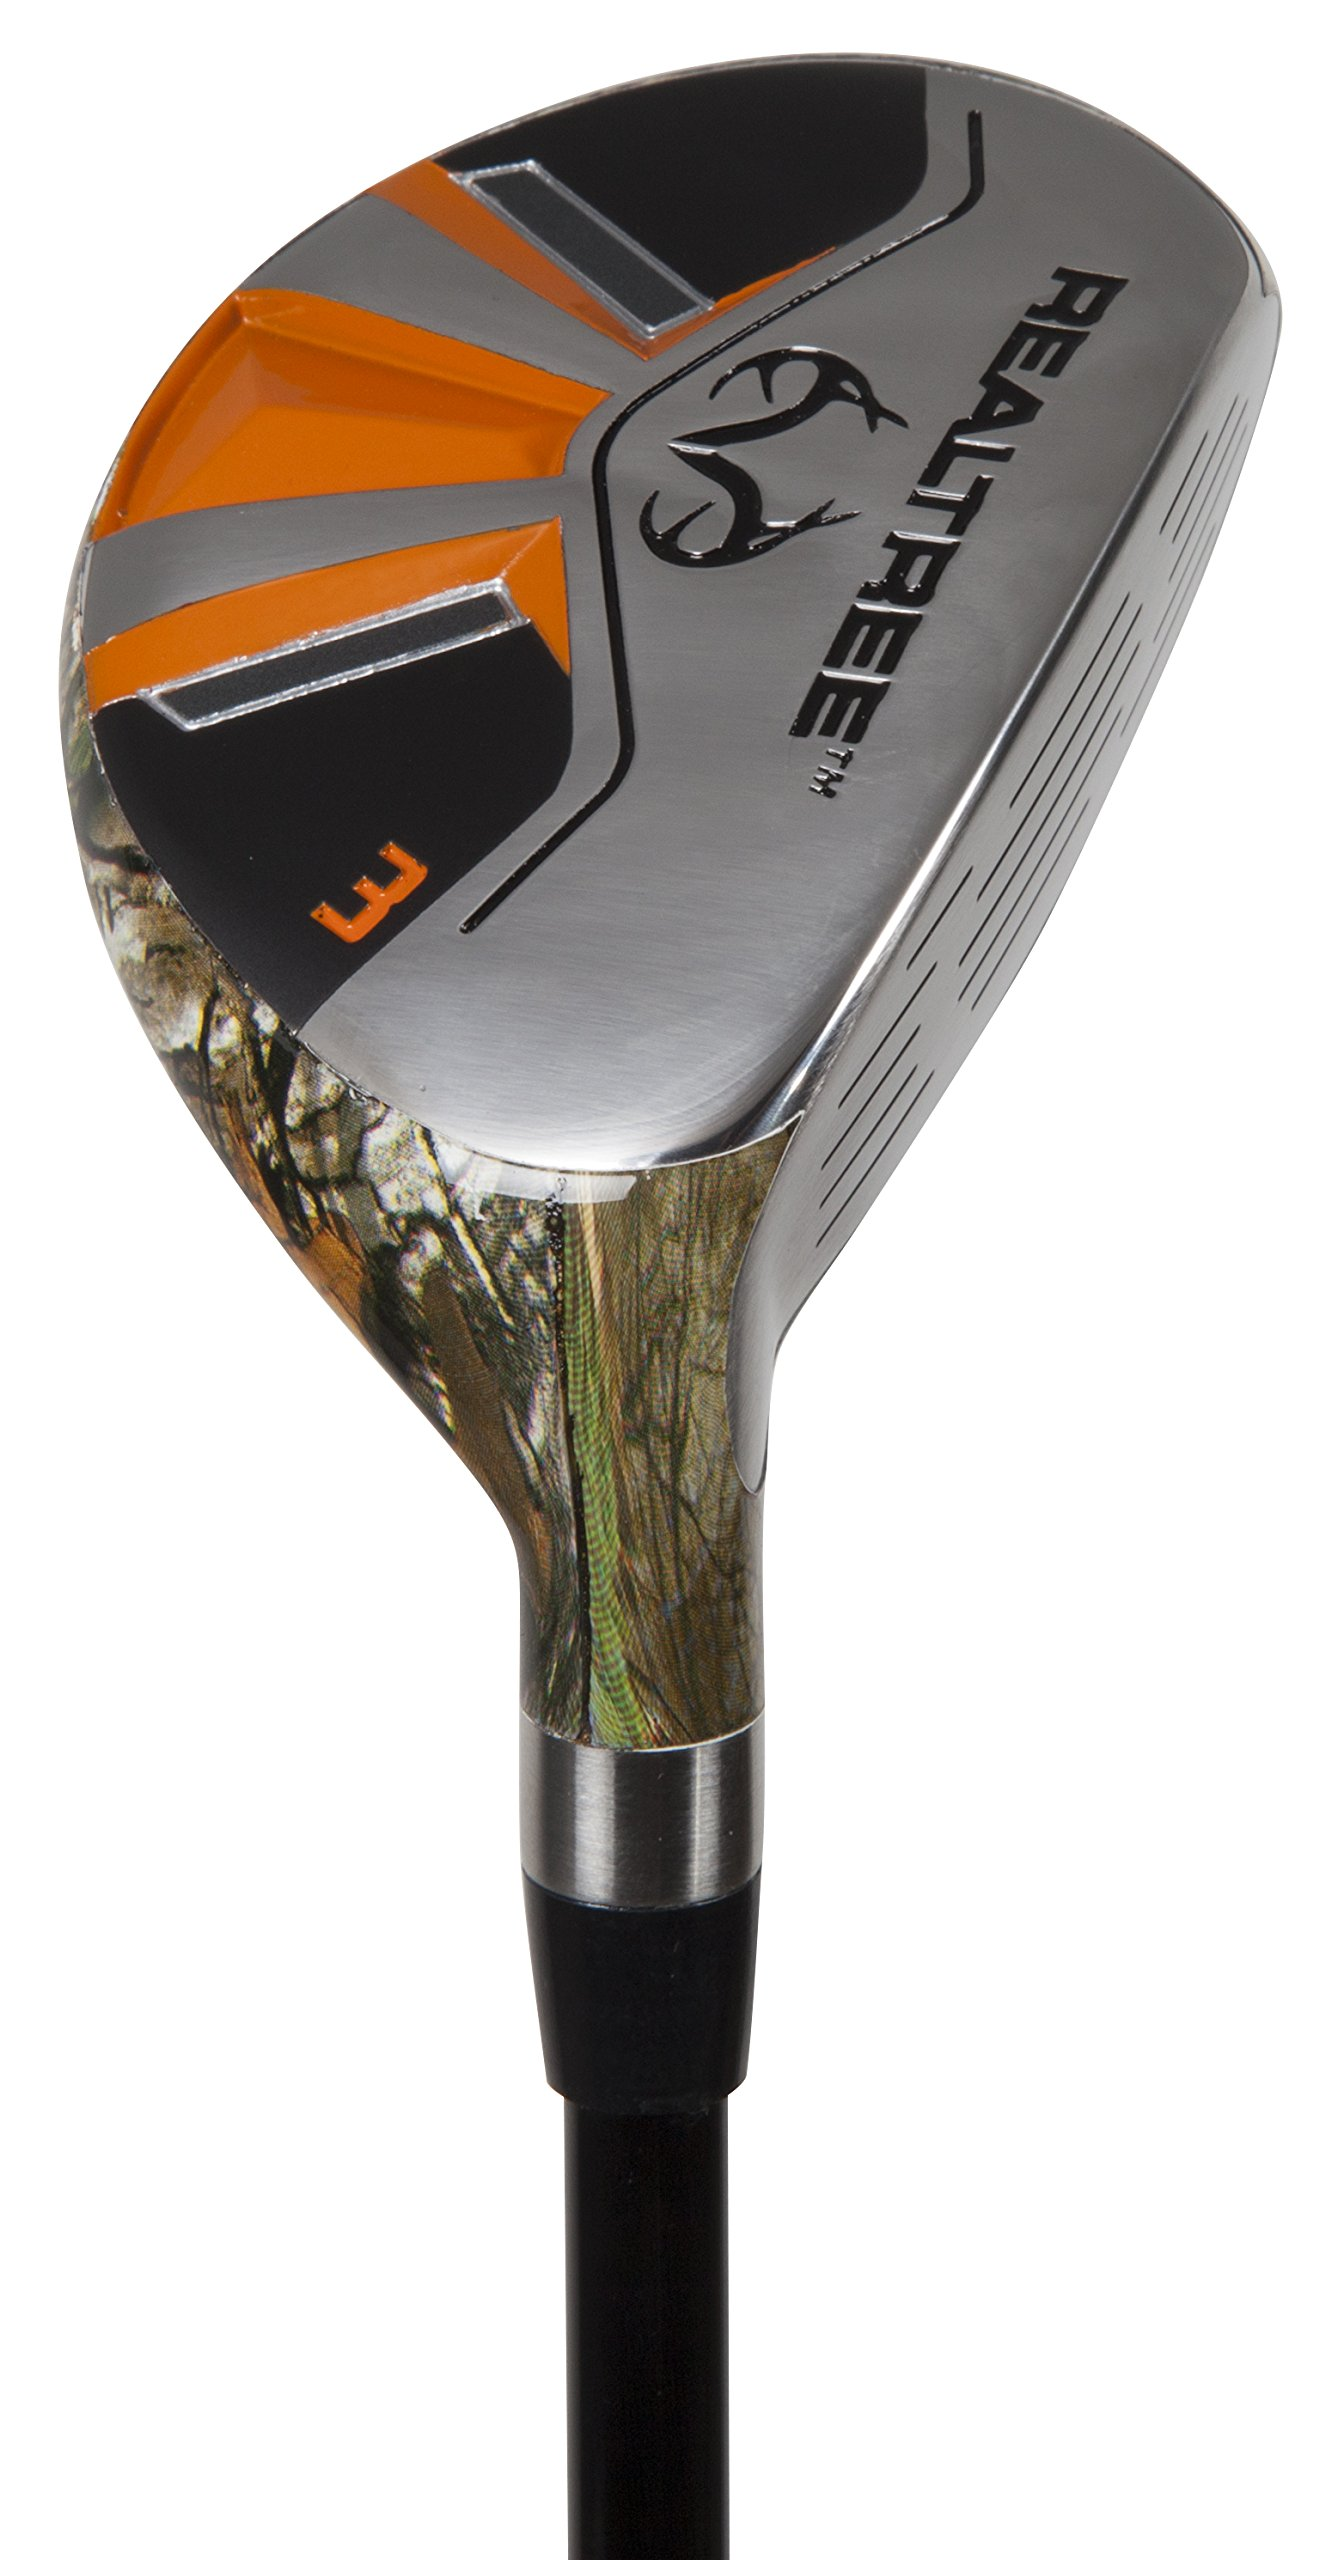 Pinemeadow Golf Men's Realtree Xtra Hybrid Club, Graphite, 19-Degree, 3, Regular, Right Hand